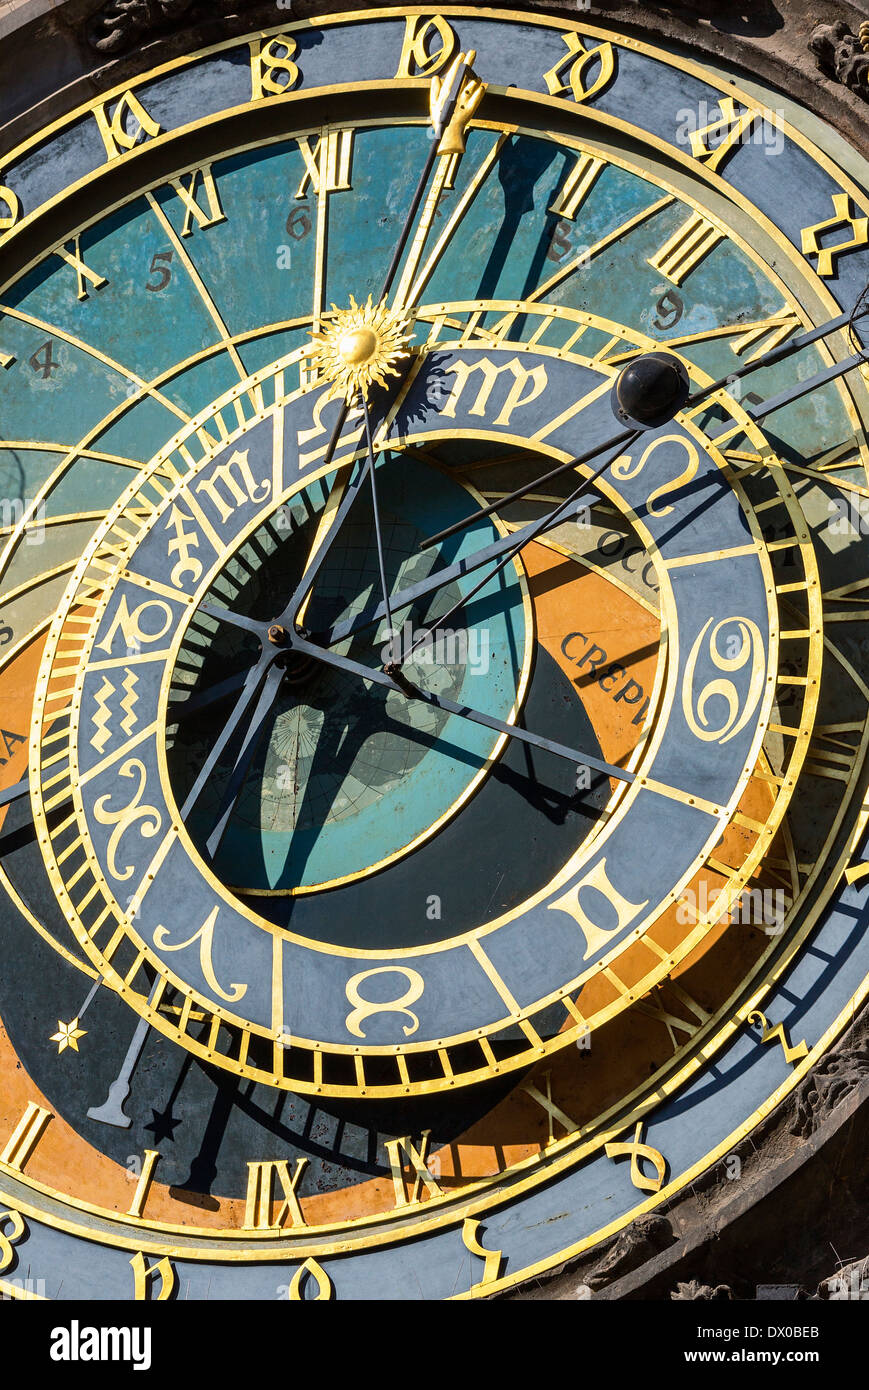 Astronomical clock, Town Hall, Old Town Square, Prague, Czech Republic - Stock Image